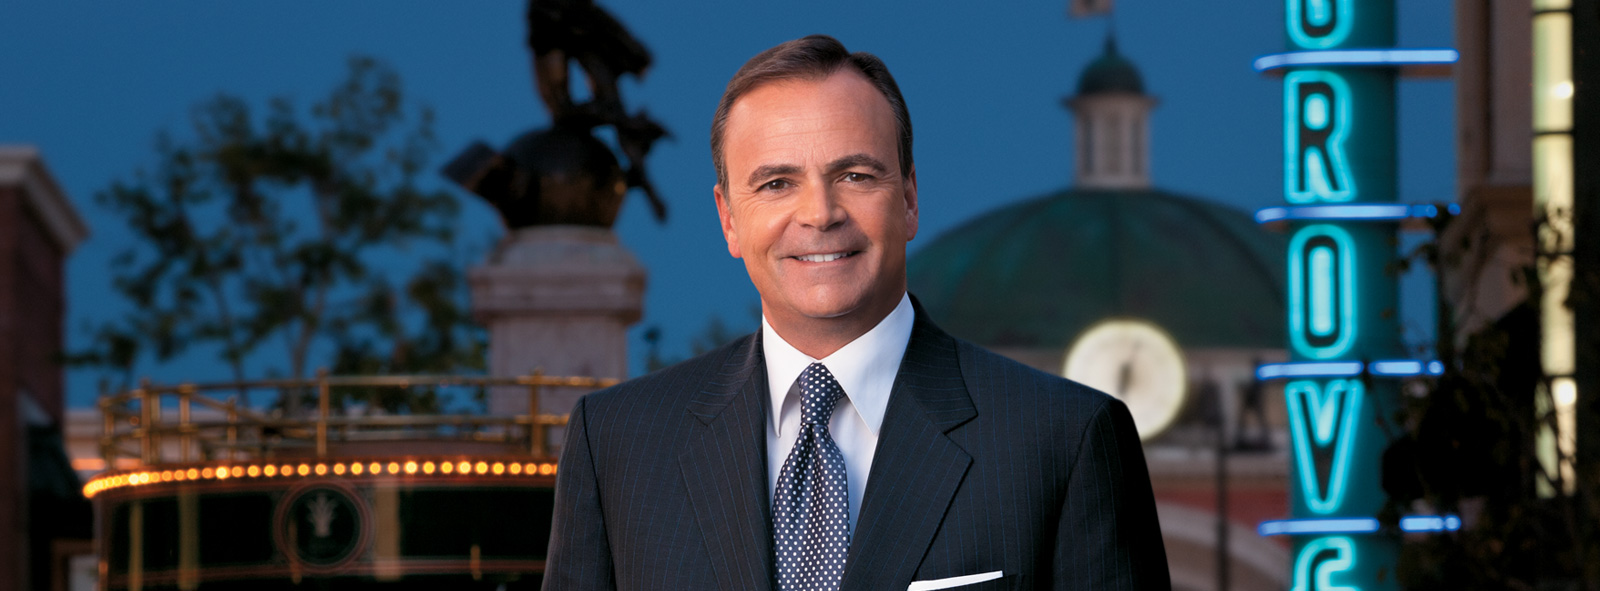 Image of First Republic Real Estate / Property Management client(s) Rick Caruso